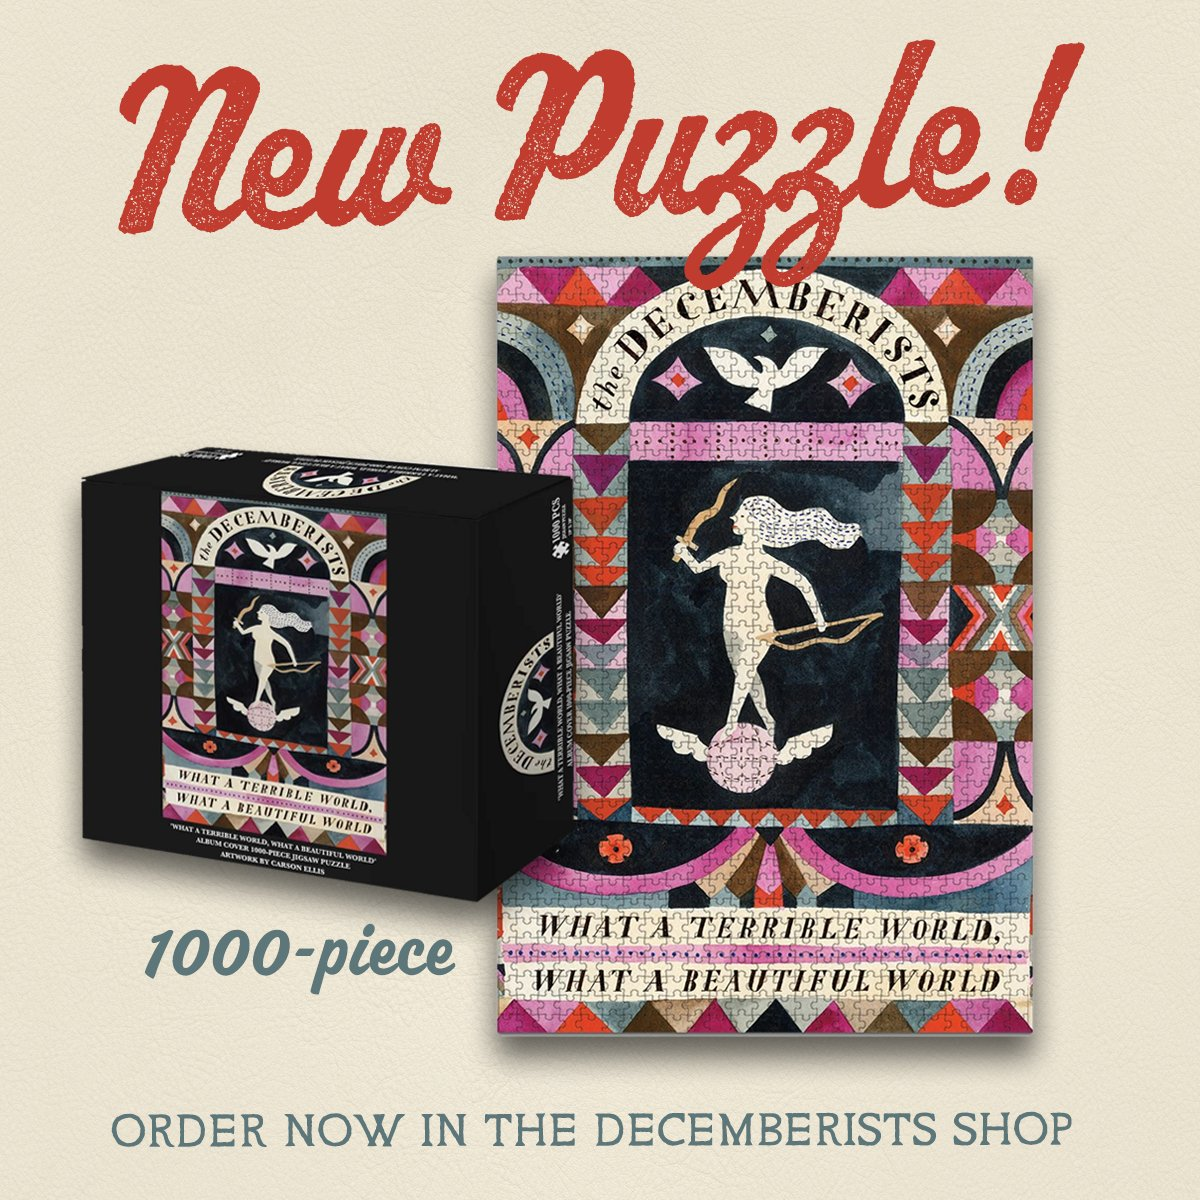 New items up in the Decemberists shop 🧩 Free shipping on all orders $75+ --> https://t.co/8uSb3iAS30 https://t.co/lJAHv4ZHa0